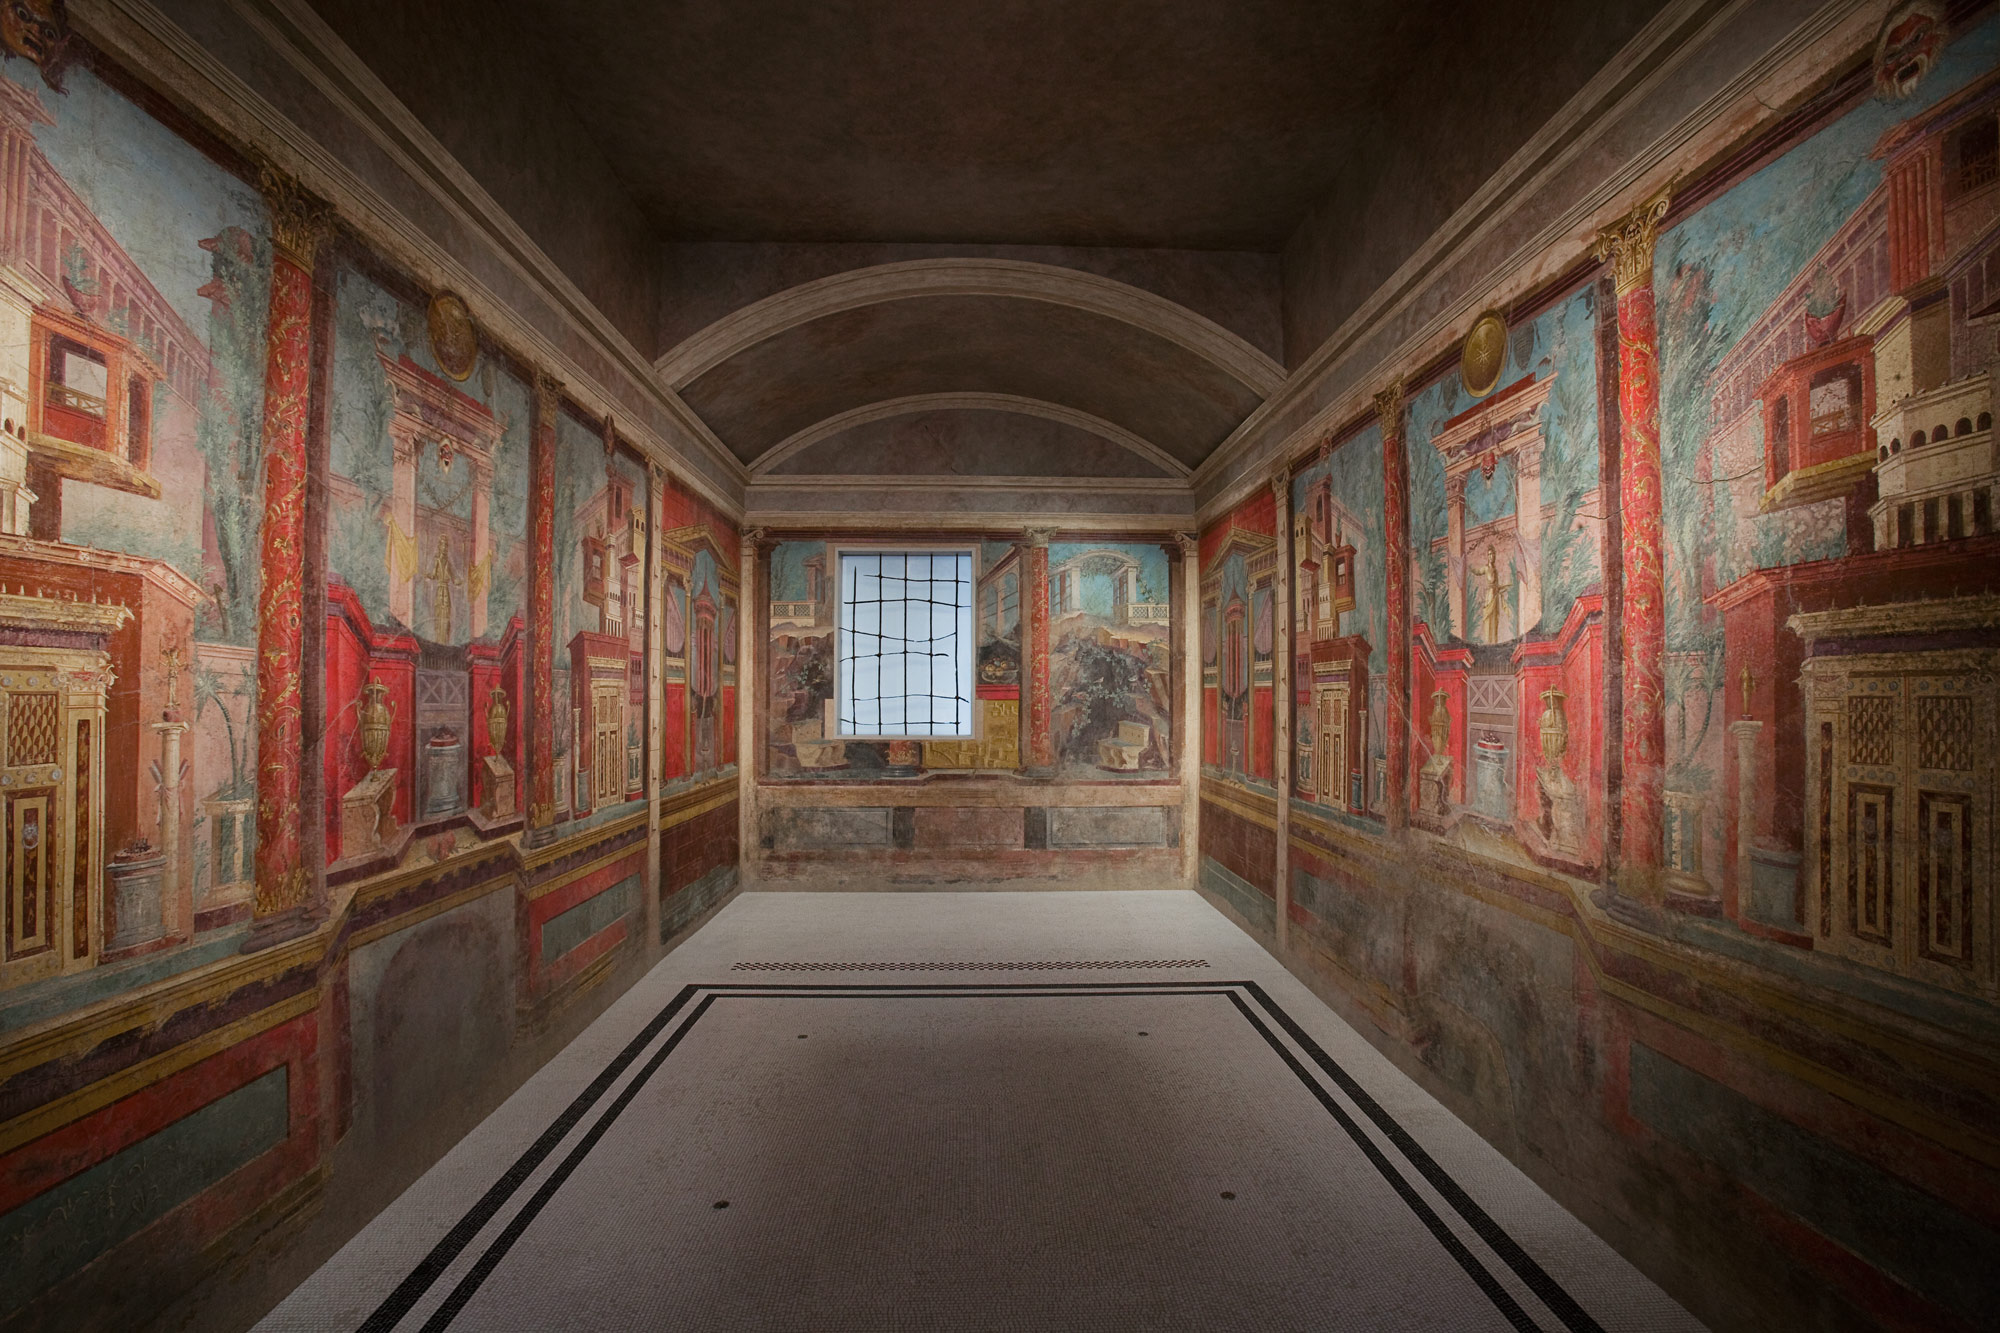 r painting essay heilbrunn timeline of art history the cubiculum bedroom from the villa of p fannius synistor at boscoreale